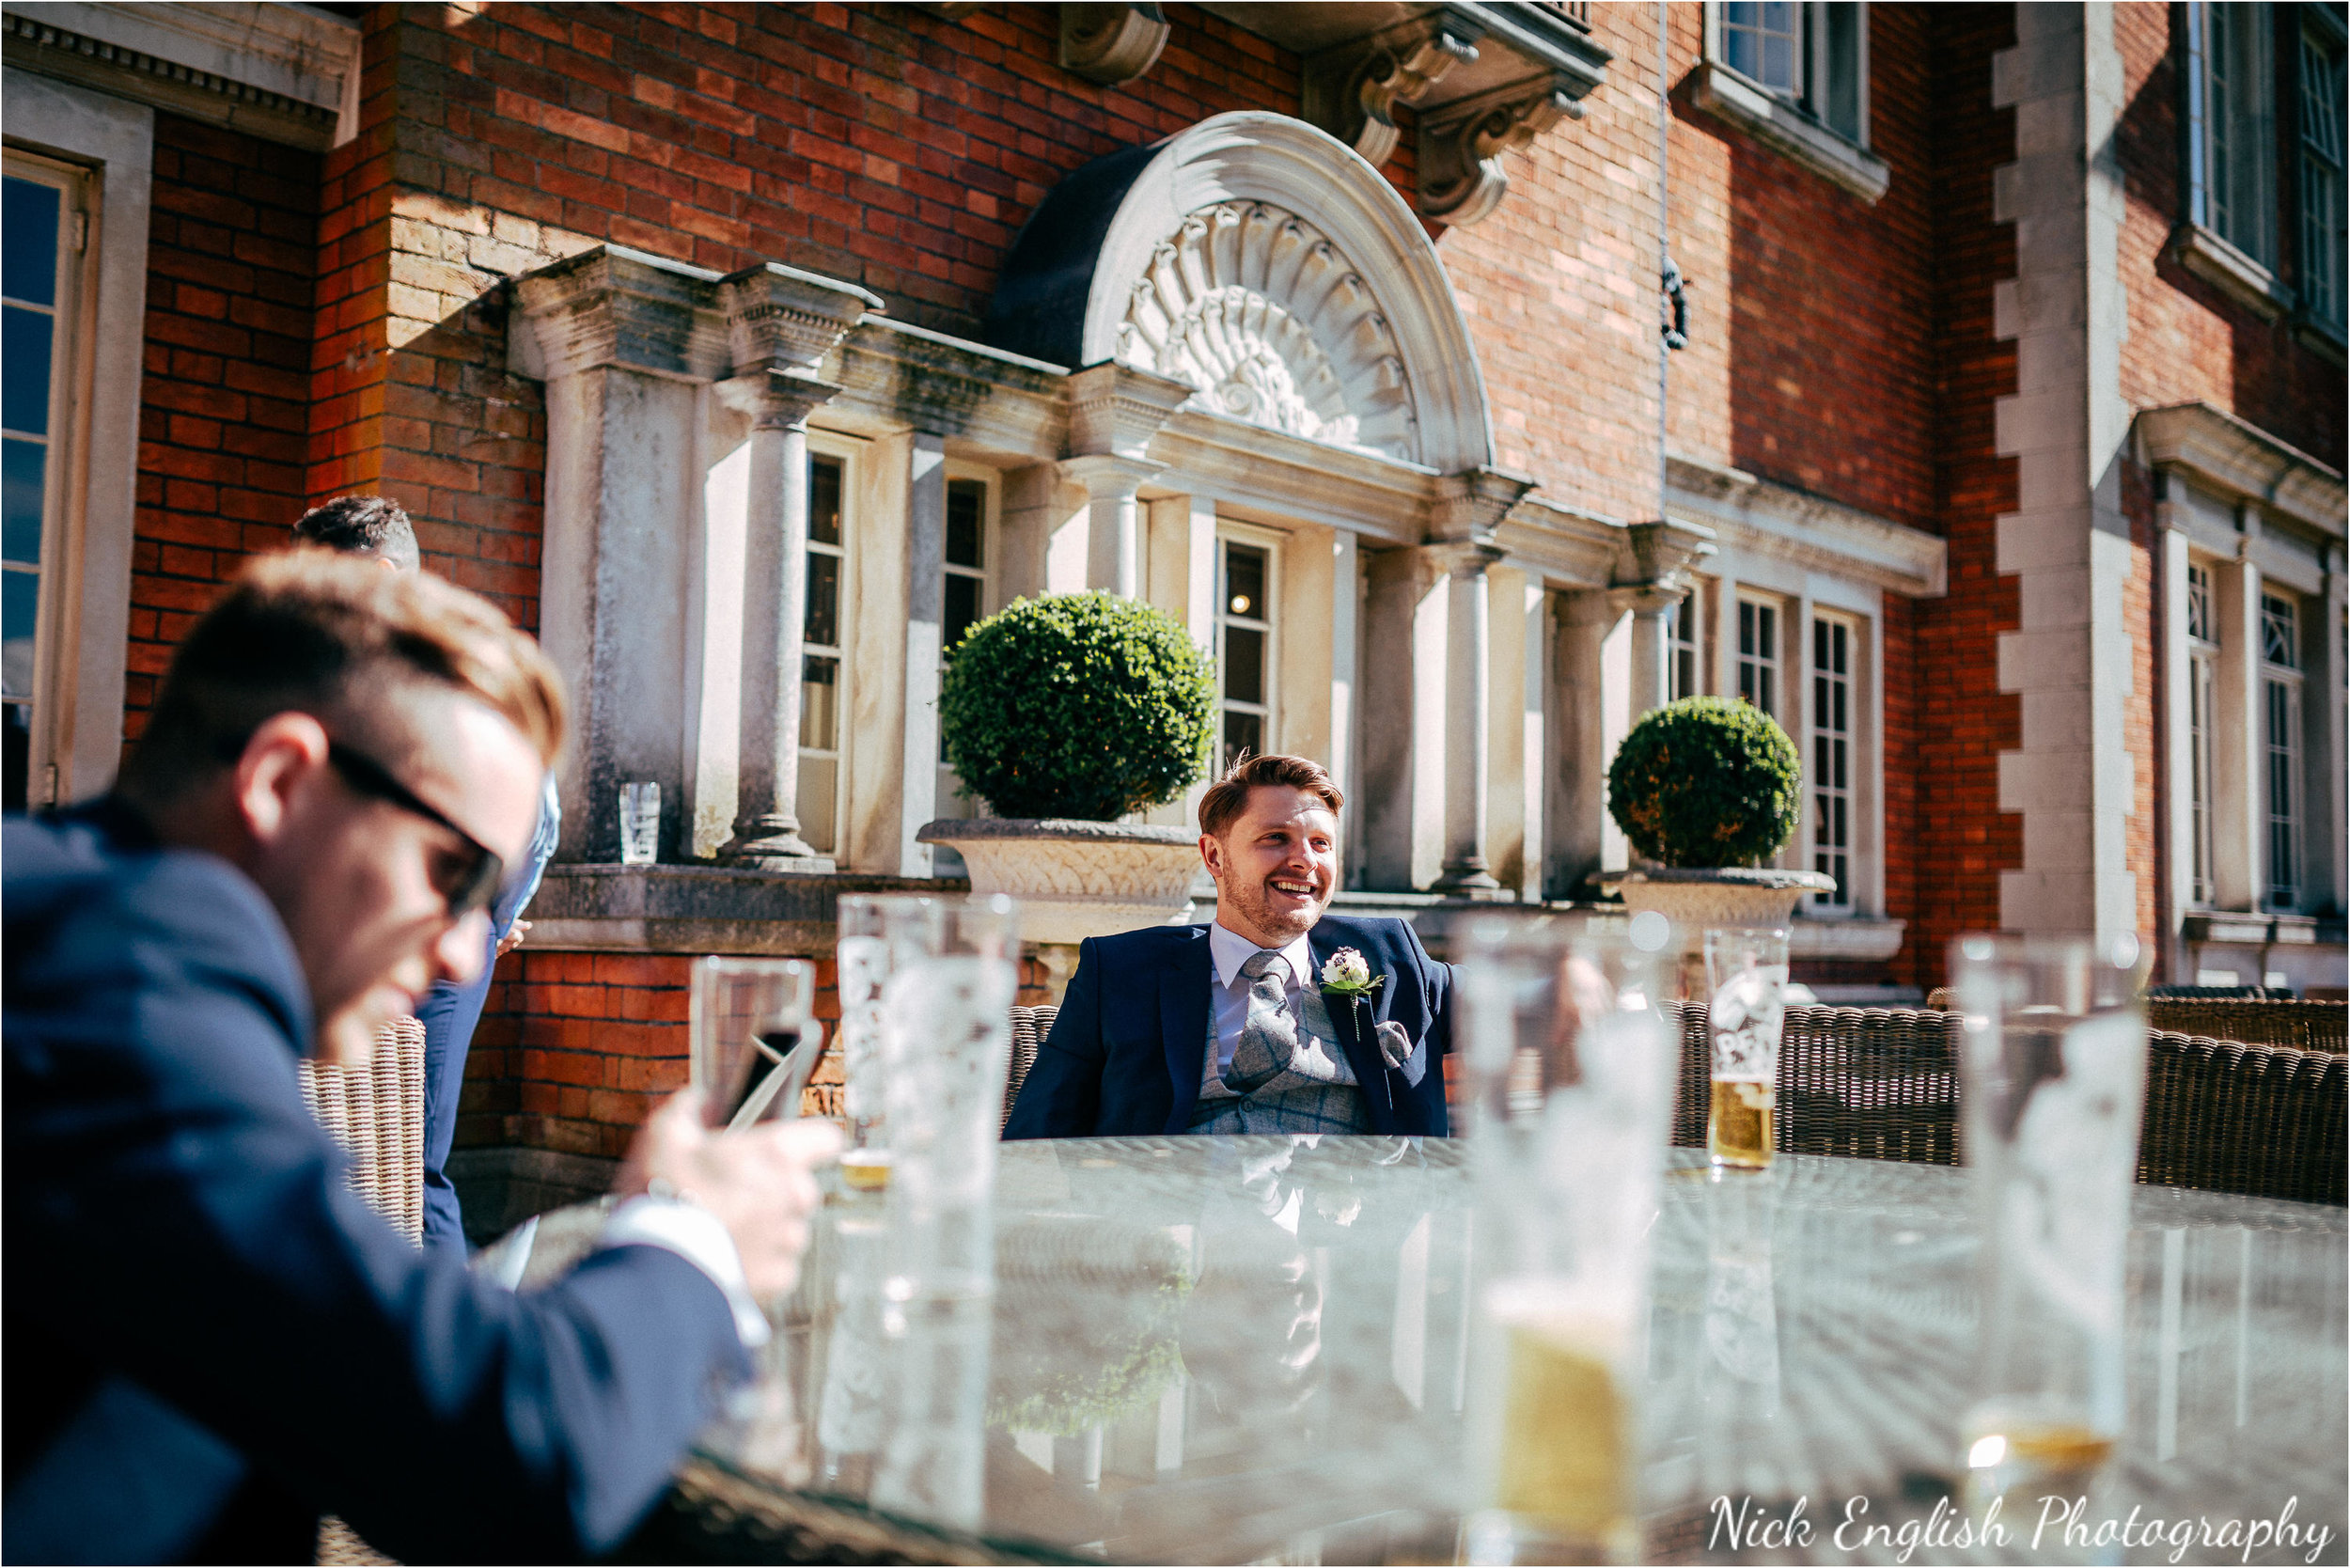 Eaves_Hall_Wedding_Photographs_Nick_English_Photography-66.jpg